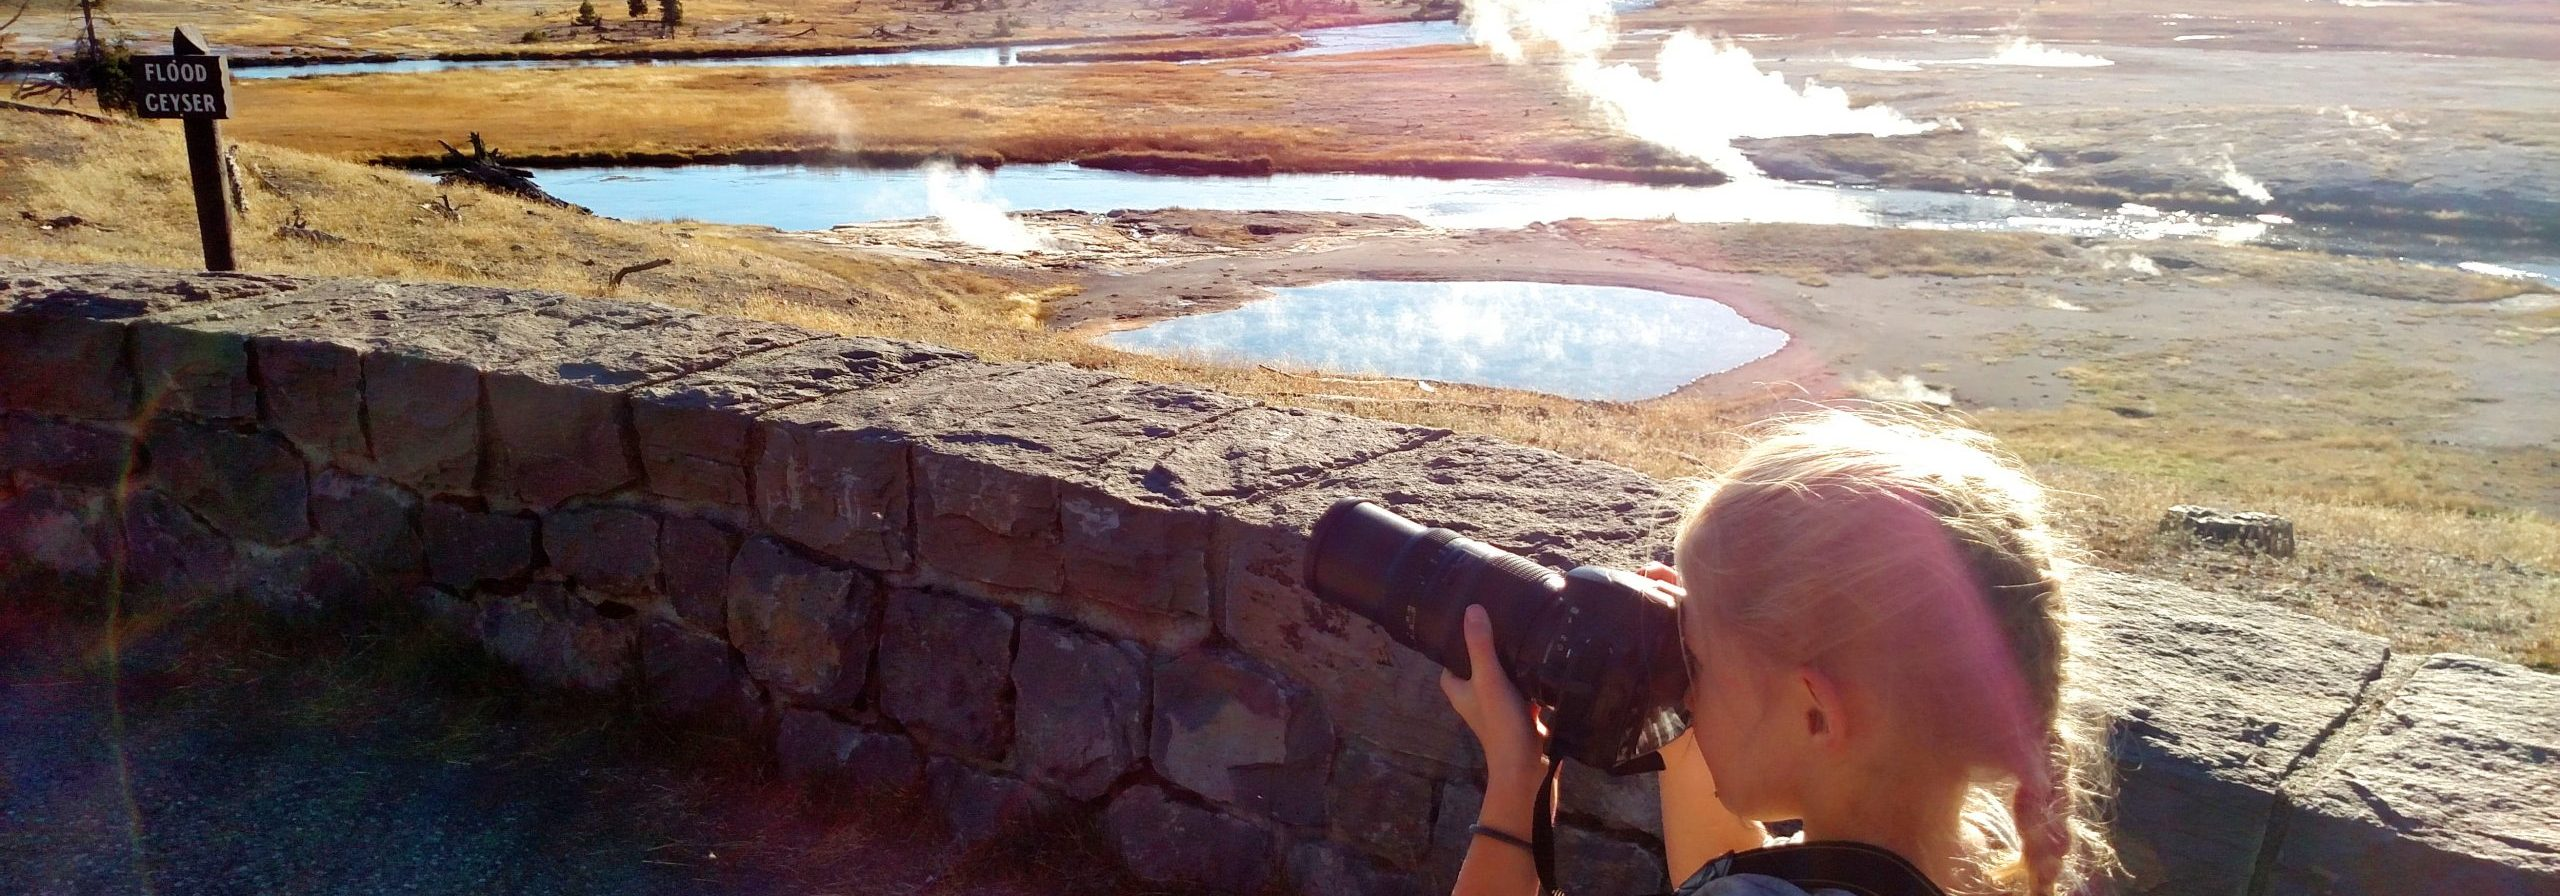 Family Trip to Yellowstone - Little Girl